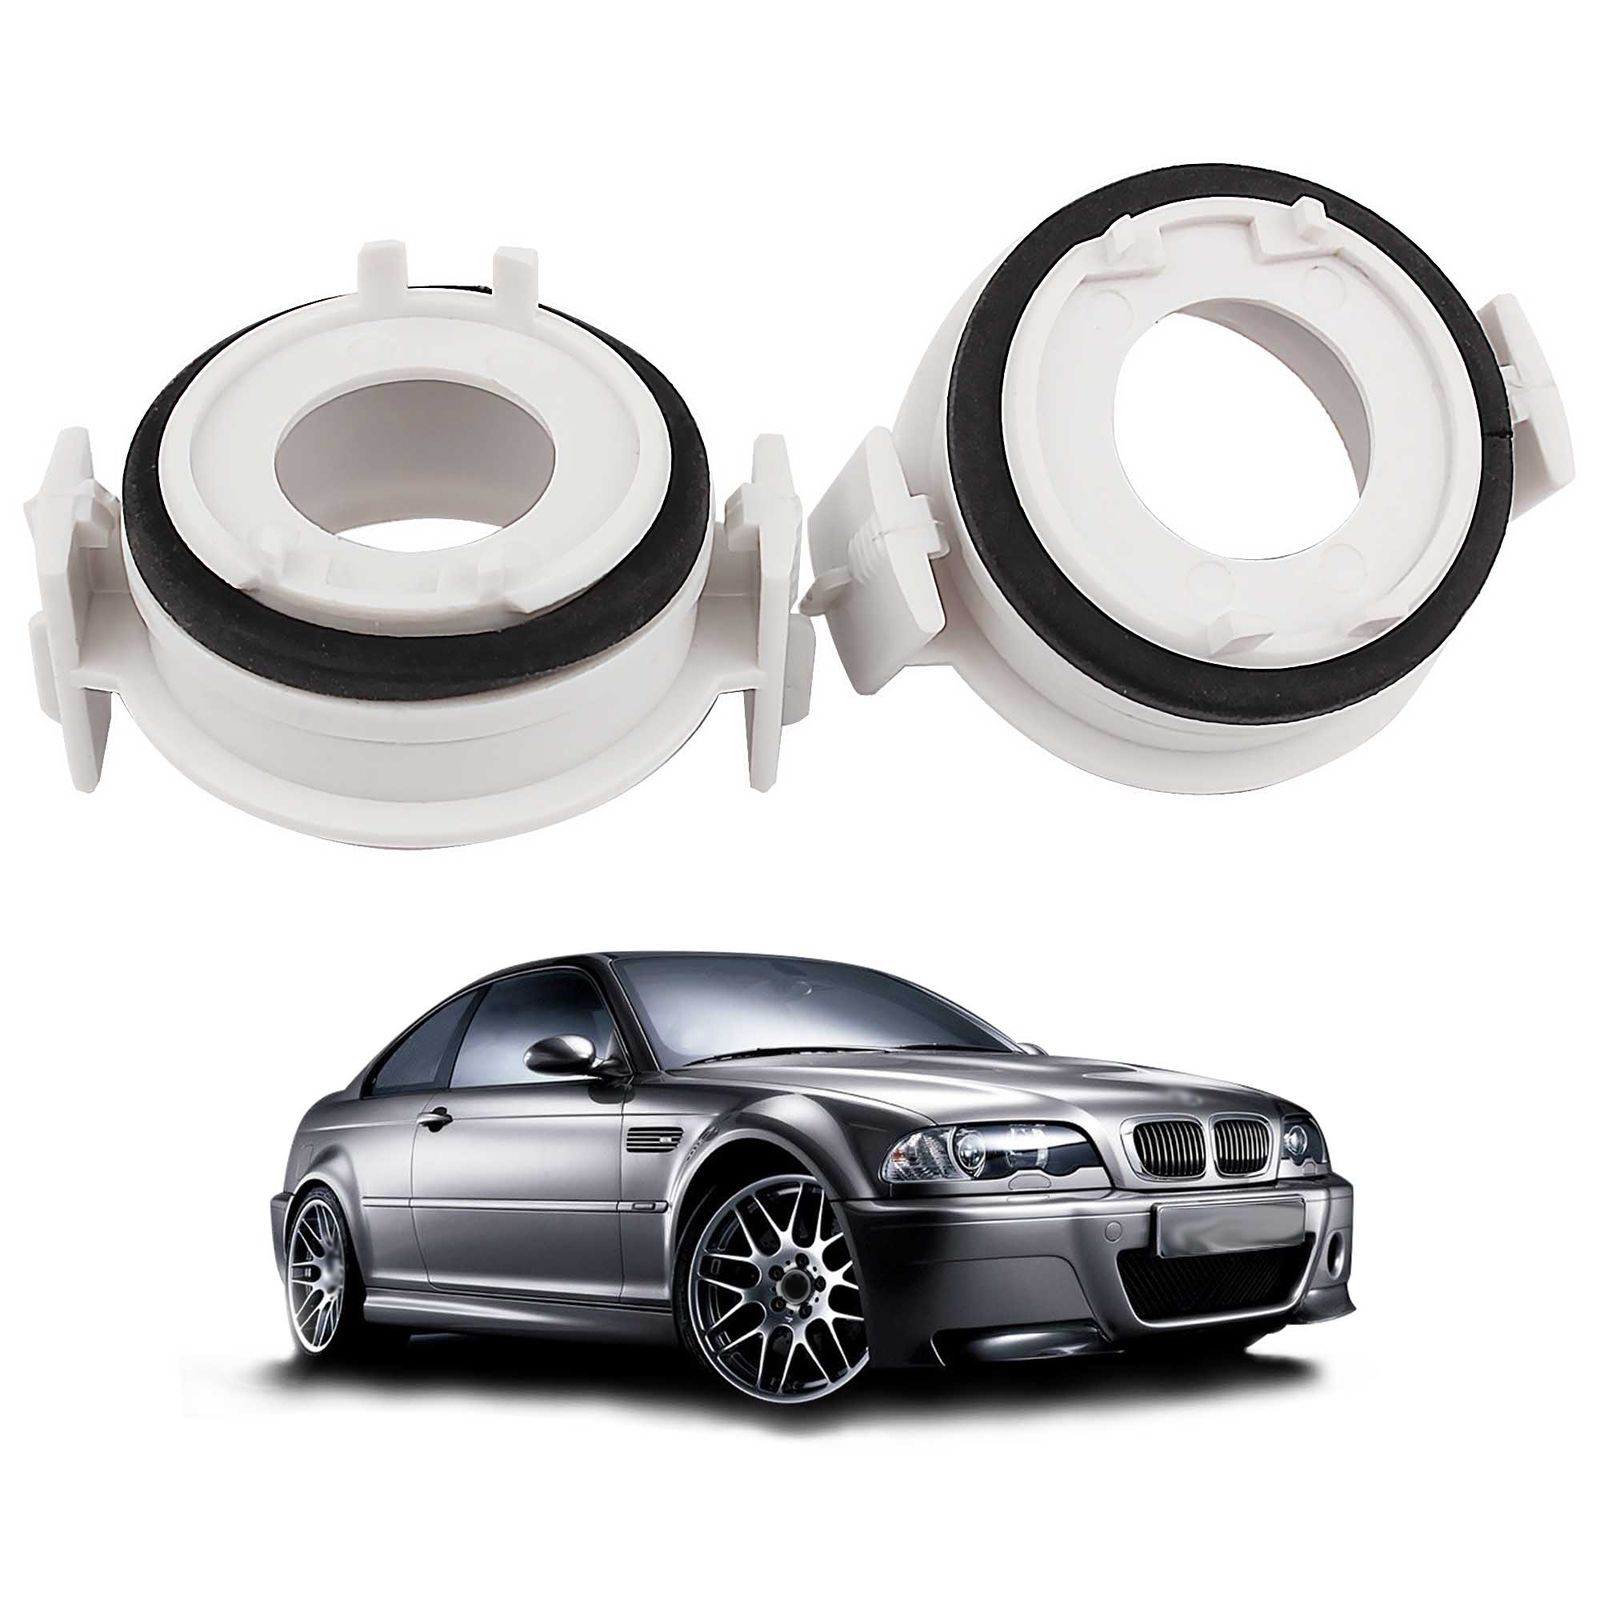 2pcs H7 Retainer Headlight Holder Adapters For BMW E46 3 Series 1998-2005 HID LED Headlight Conversion